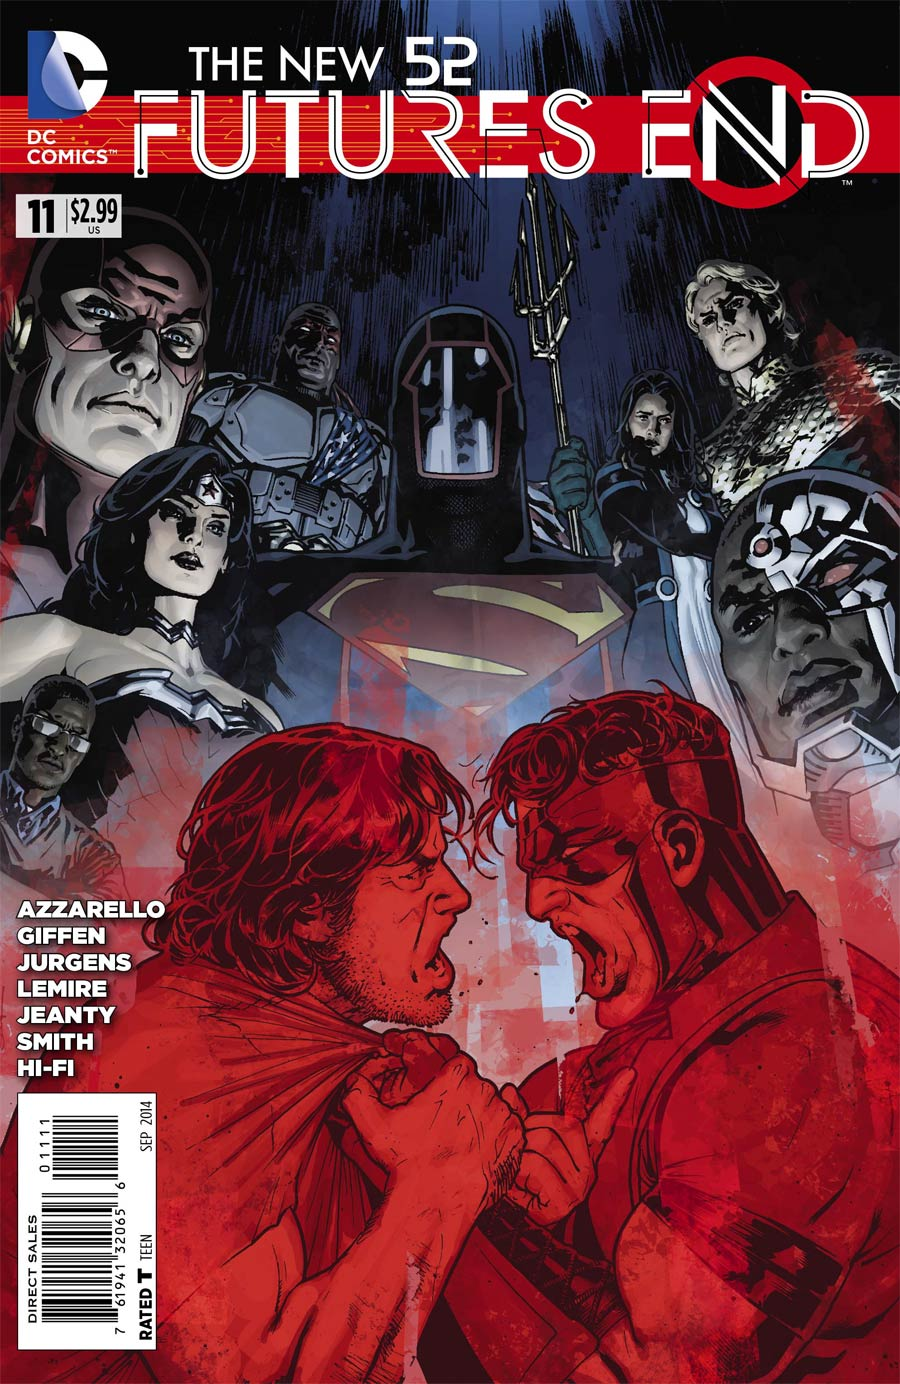 New 52 Futures End #11